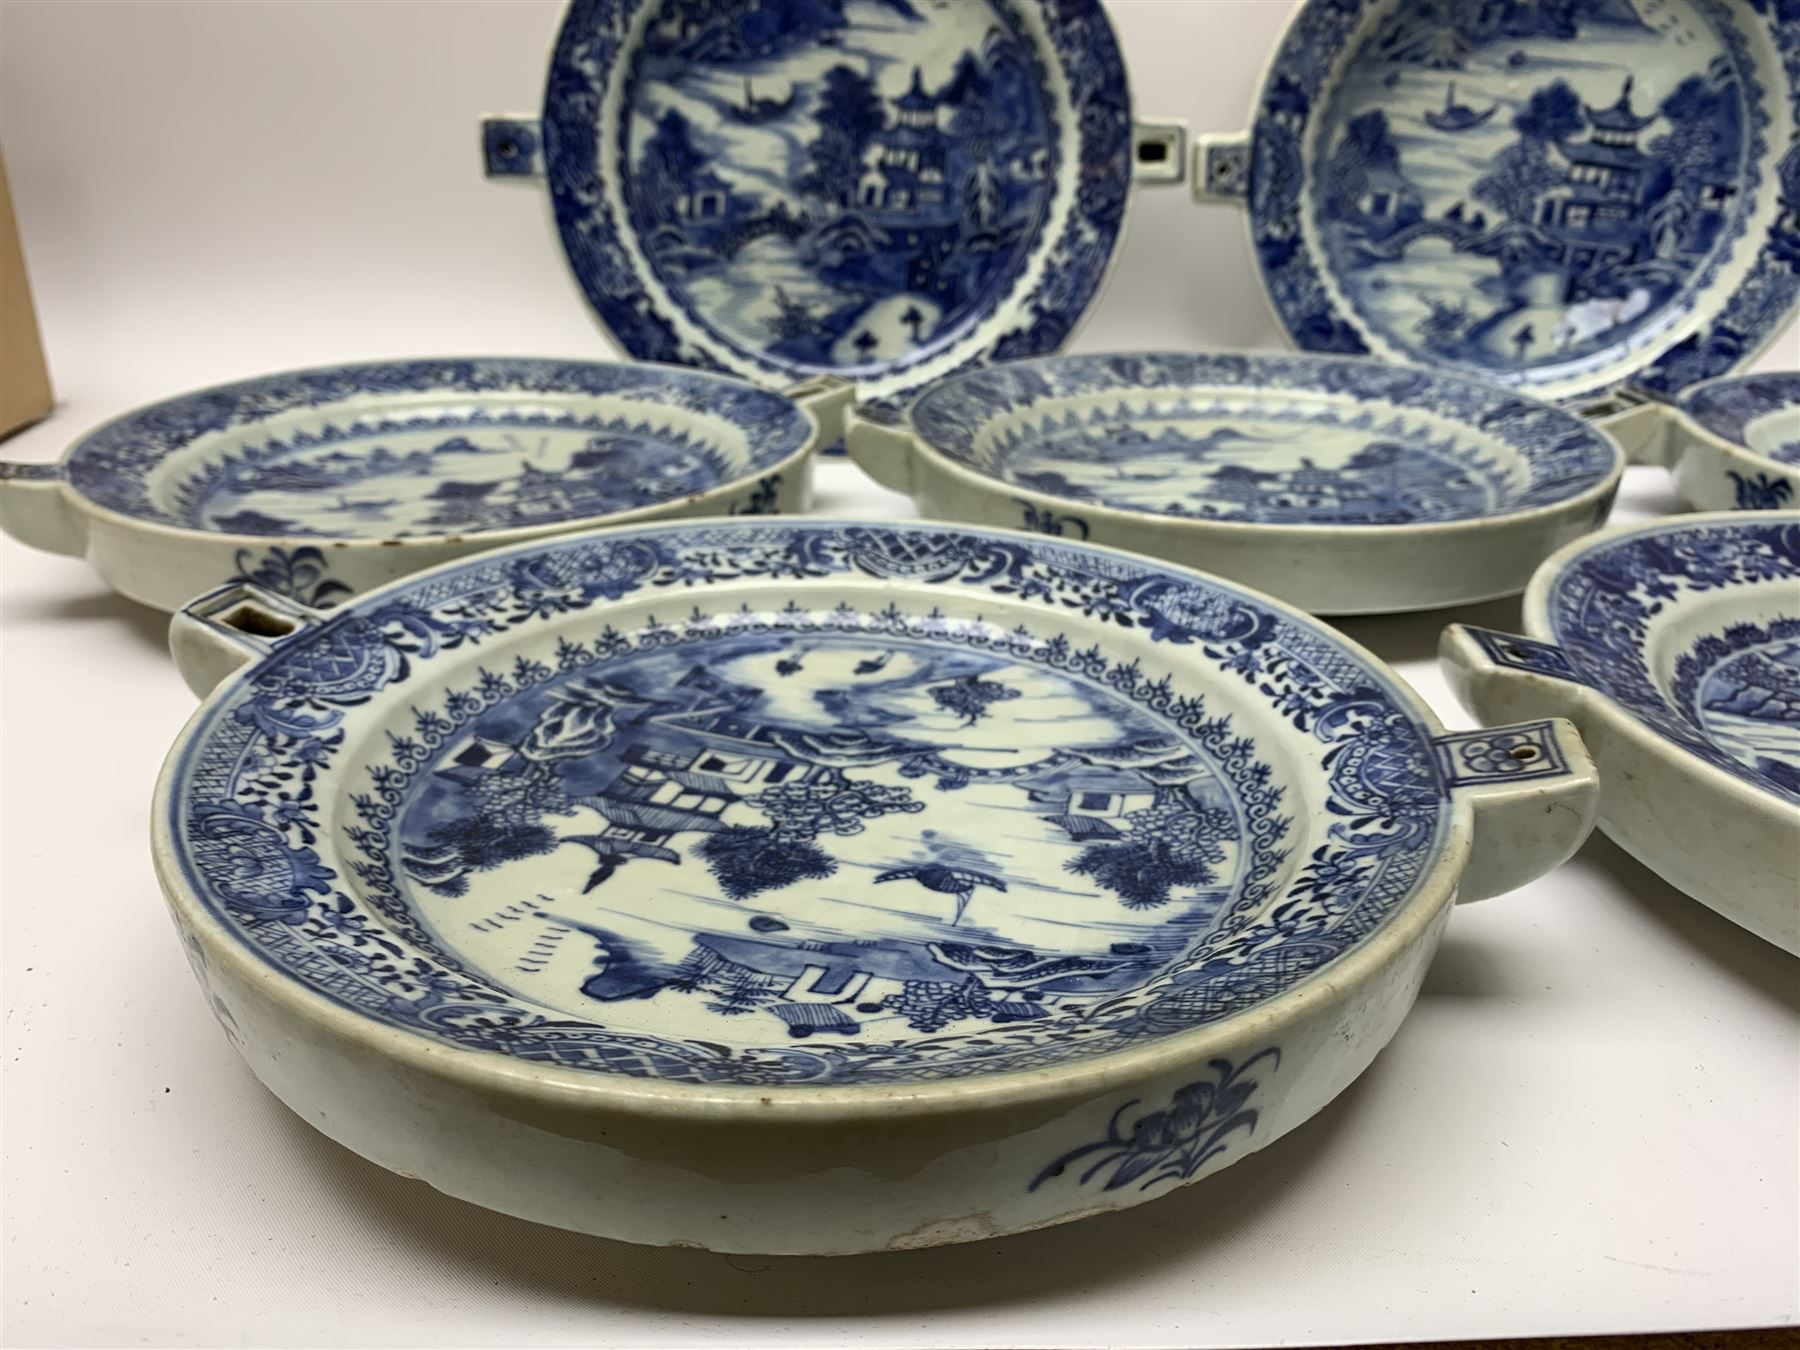 Set of seven late 18th/early 19th century Chinese export blue and white hot water plates - Image 11 of 11